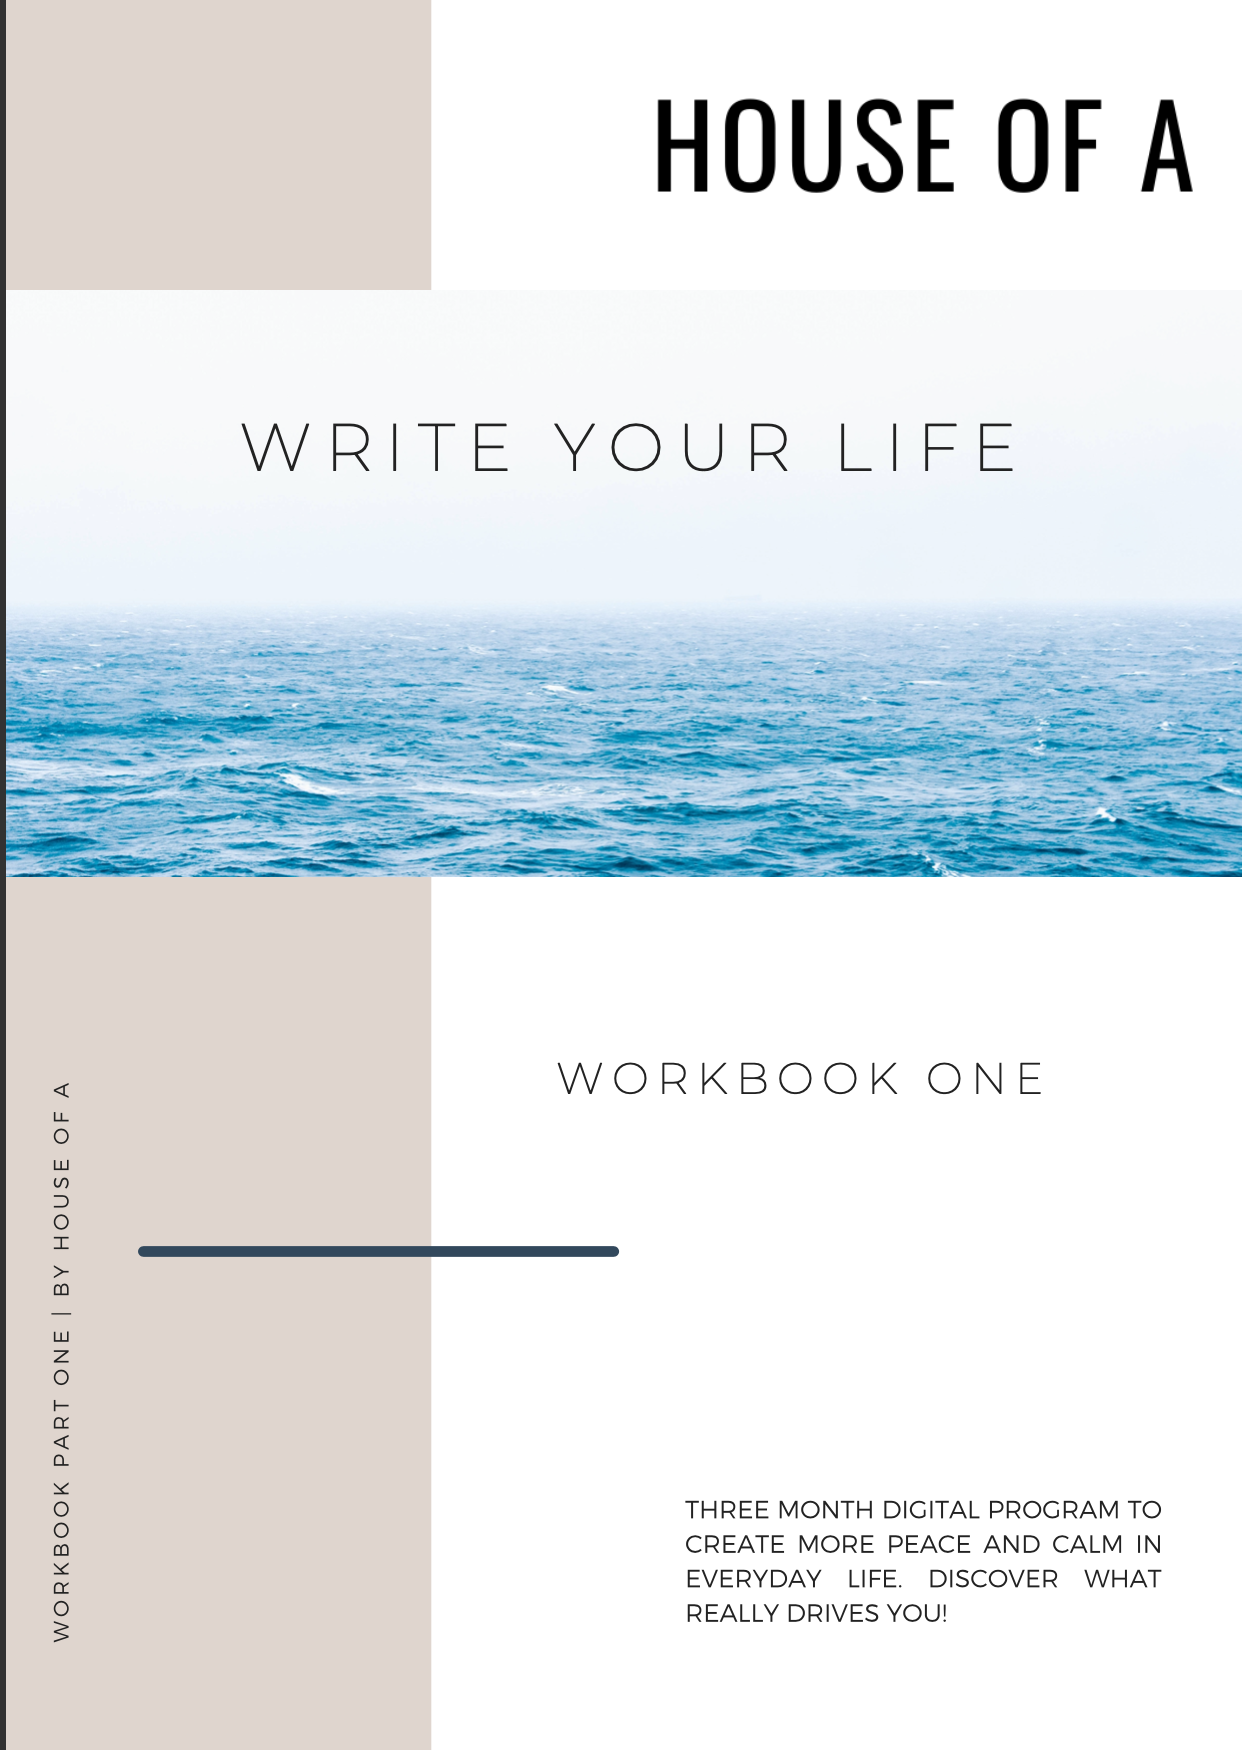 Write Your Life Program (one month payment)